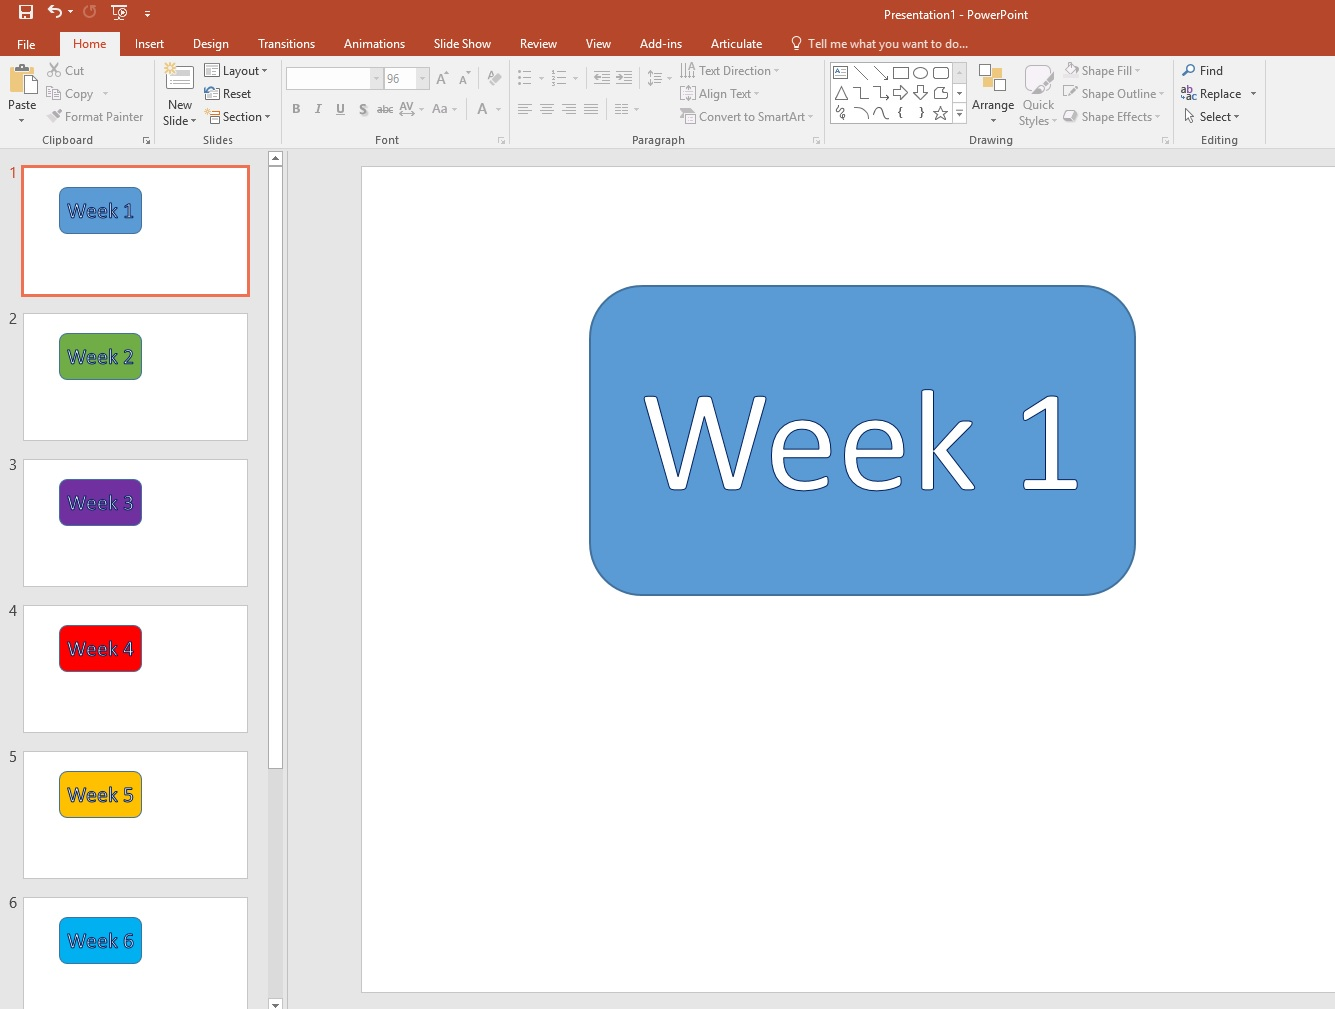 Icon in Powerpoint